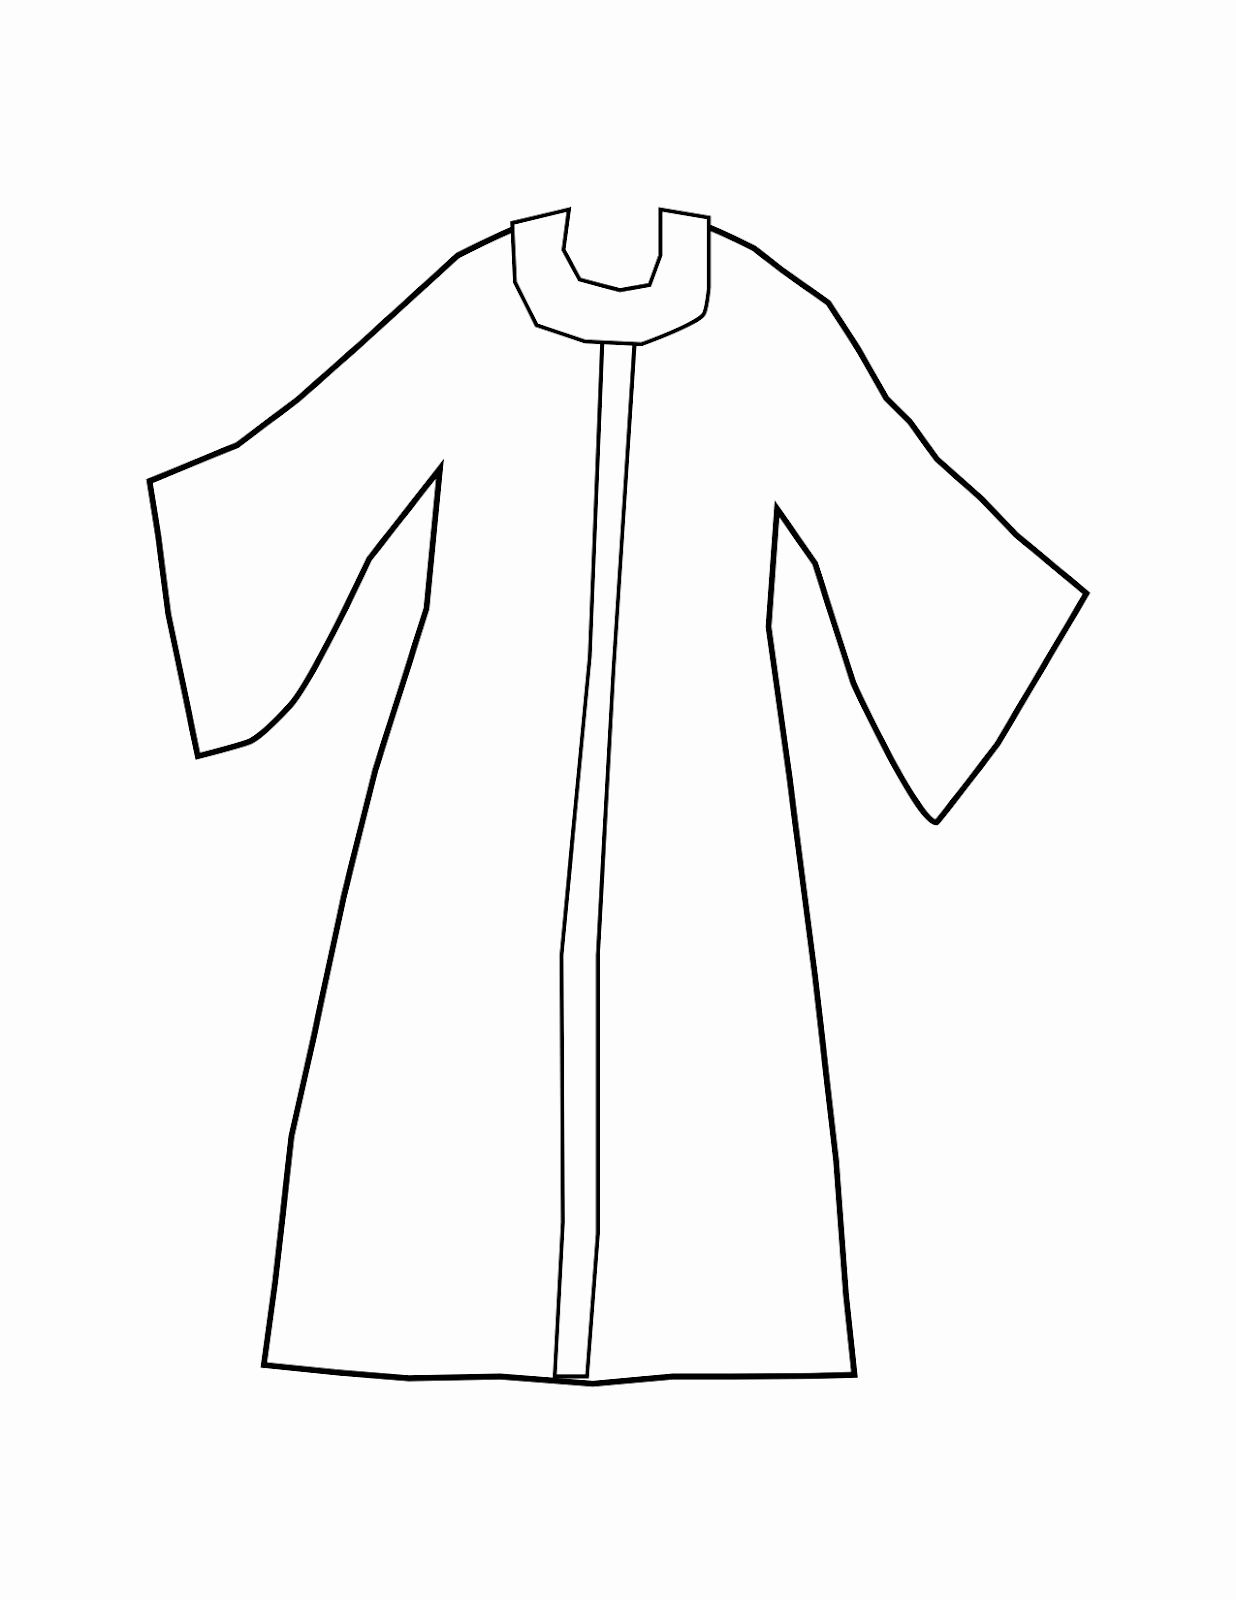 joseph coat of many colors coloring page blank template of a coat to wear joseph google search many page coat colors coloring of joseph